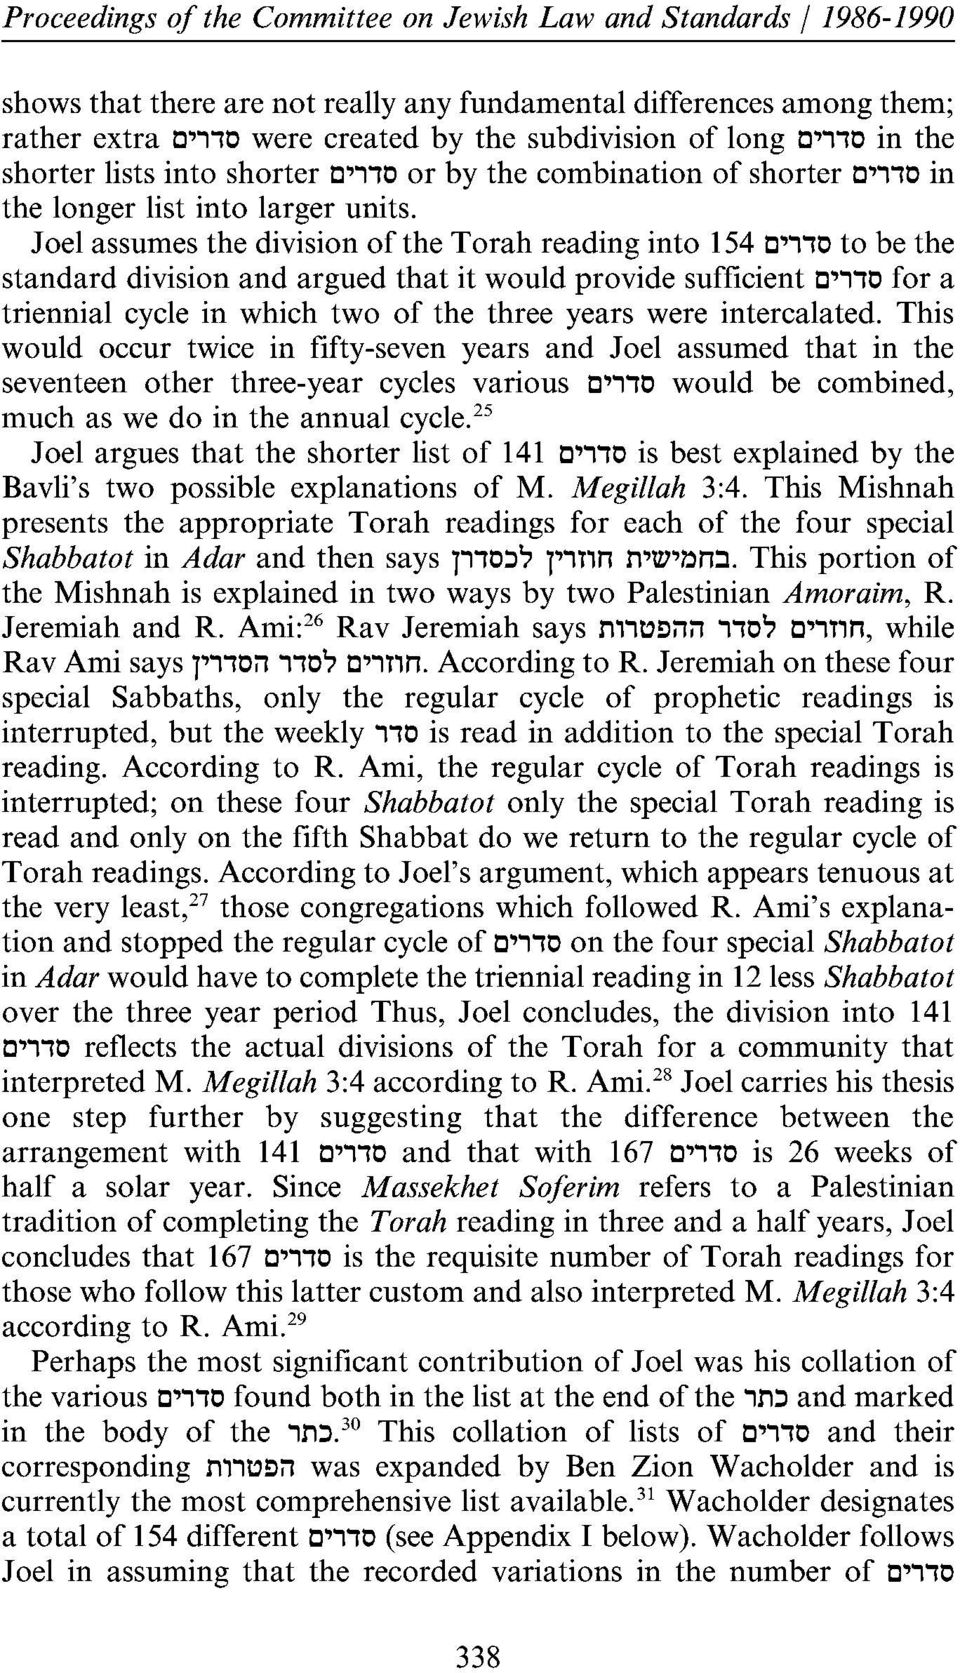 Joel assumes the division of the Torah reading into 154 C',10 to be the standard division and argued that it would provide sufficient C',10 for a triennial cycle in which two of the three years were